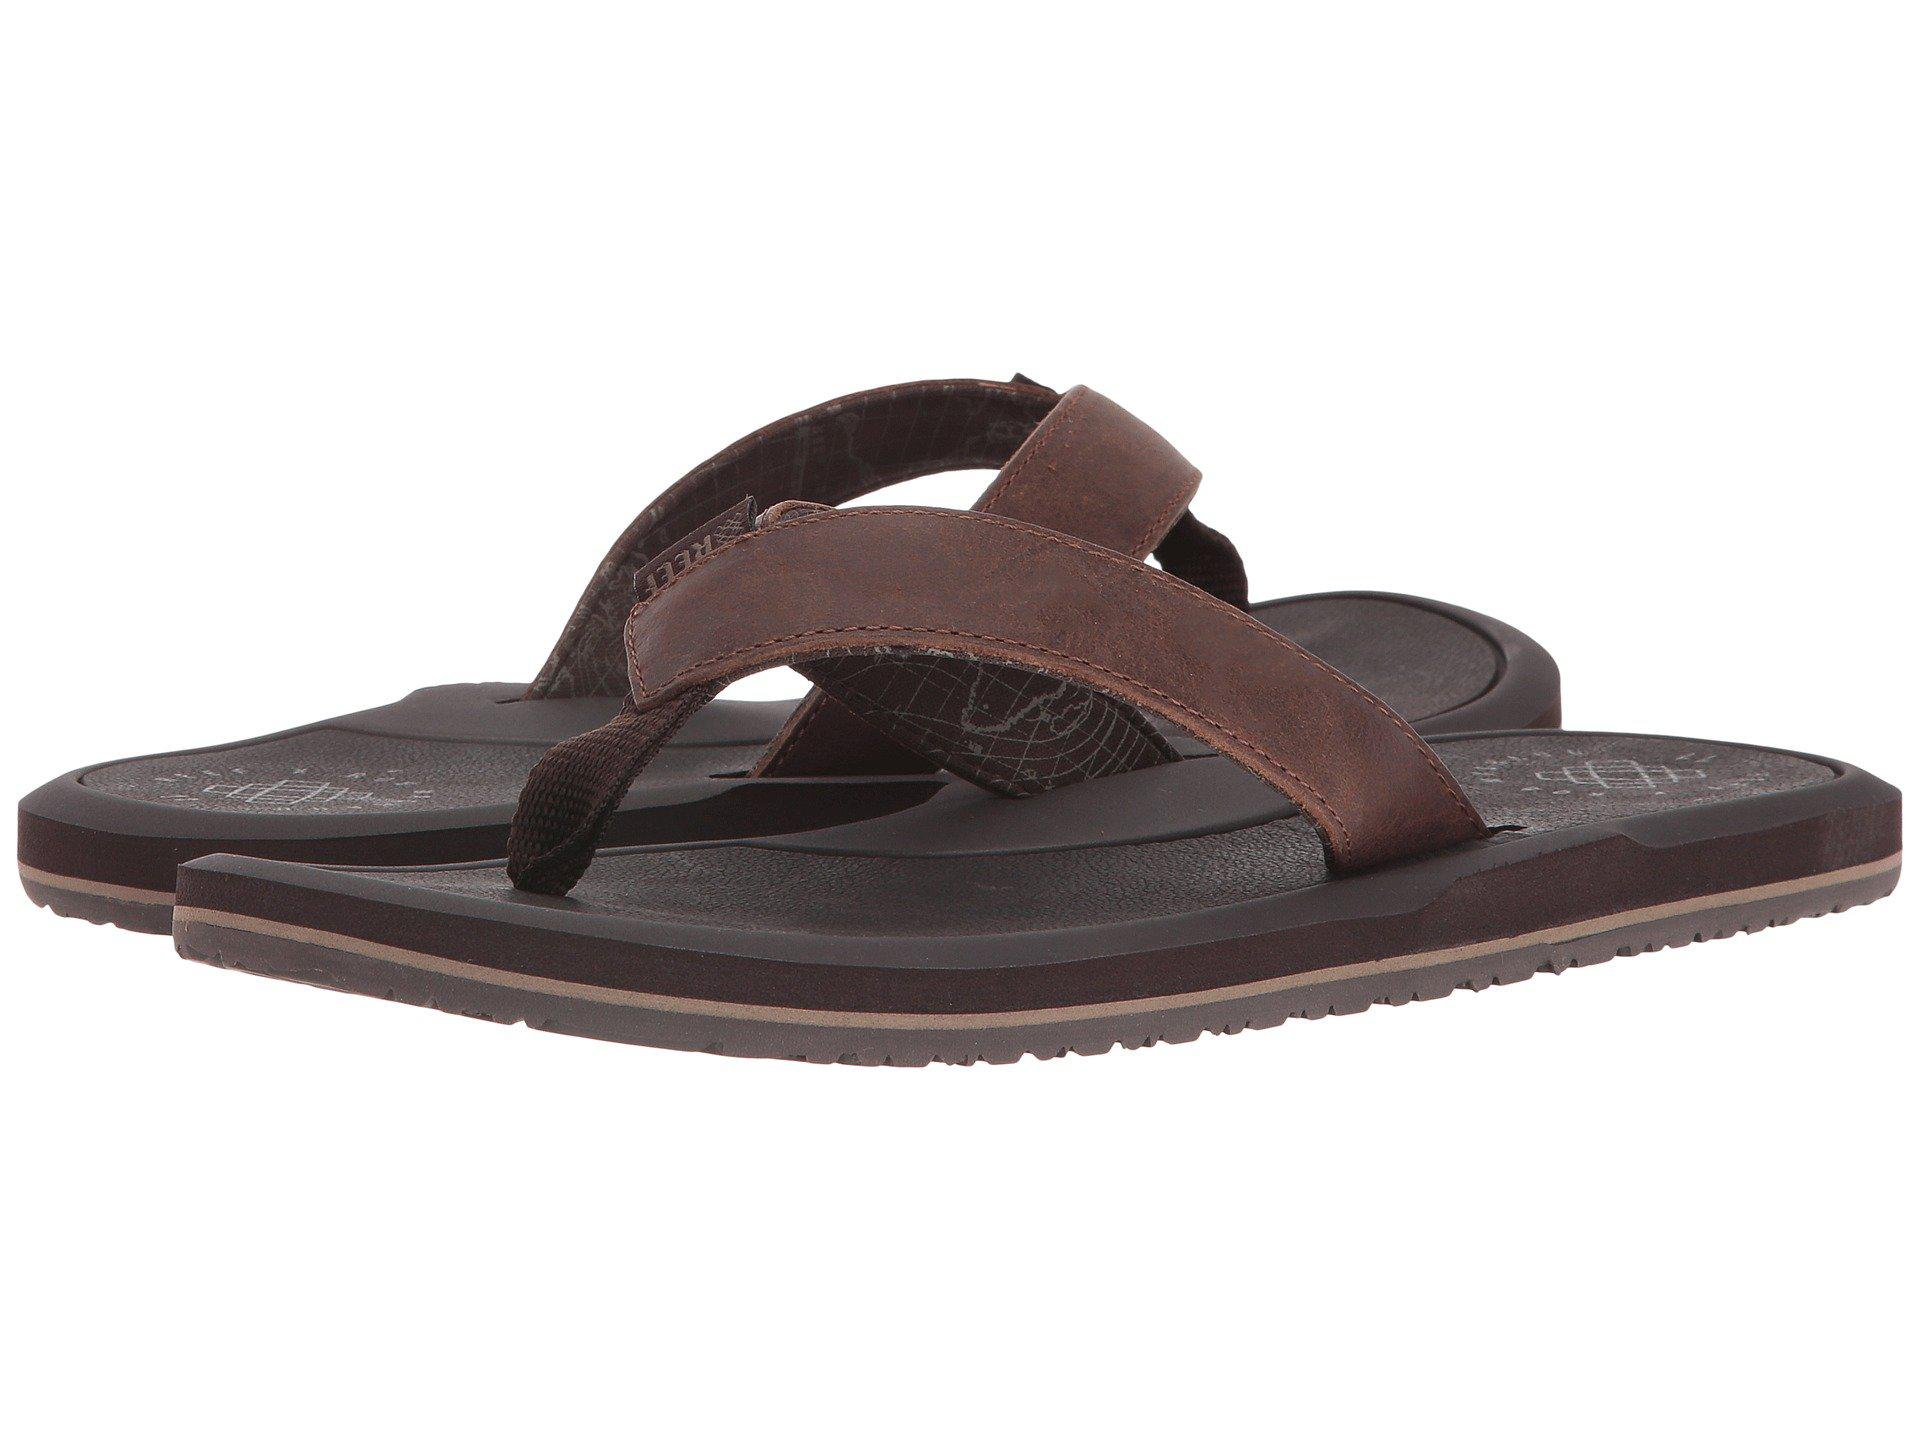 866db777e4a9 Lyst - Reef Machado Night (brown) Men s Sandals in Brown for Men